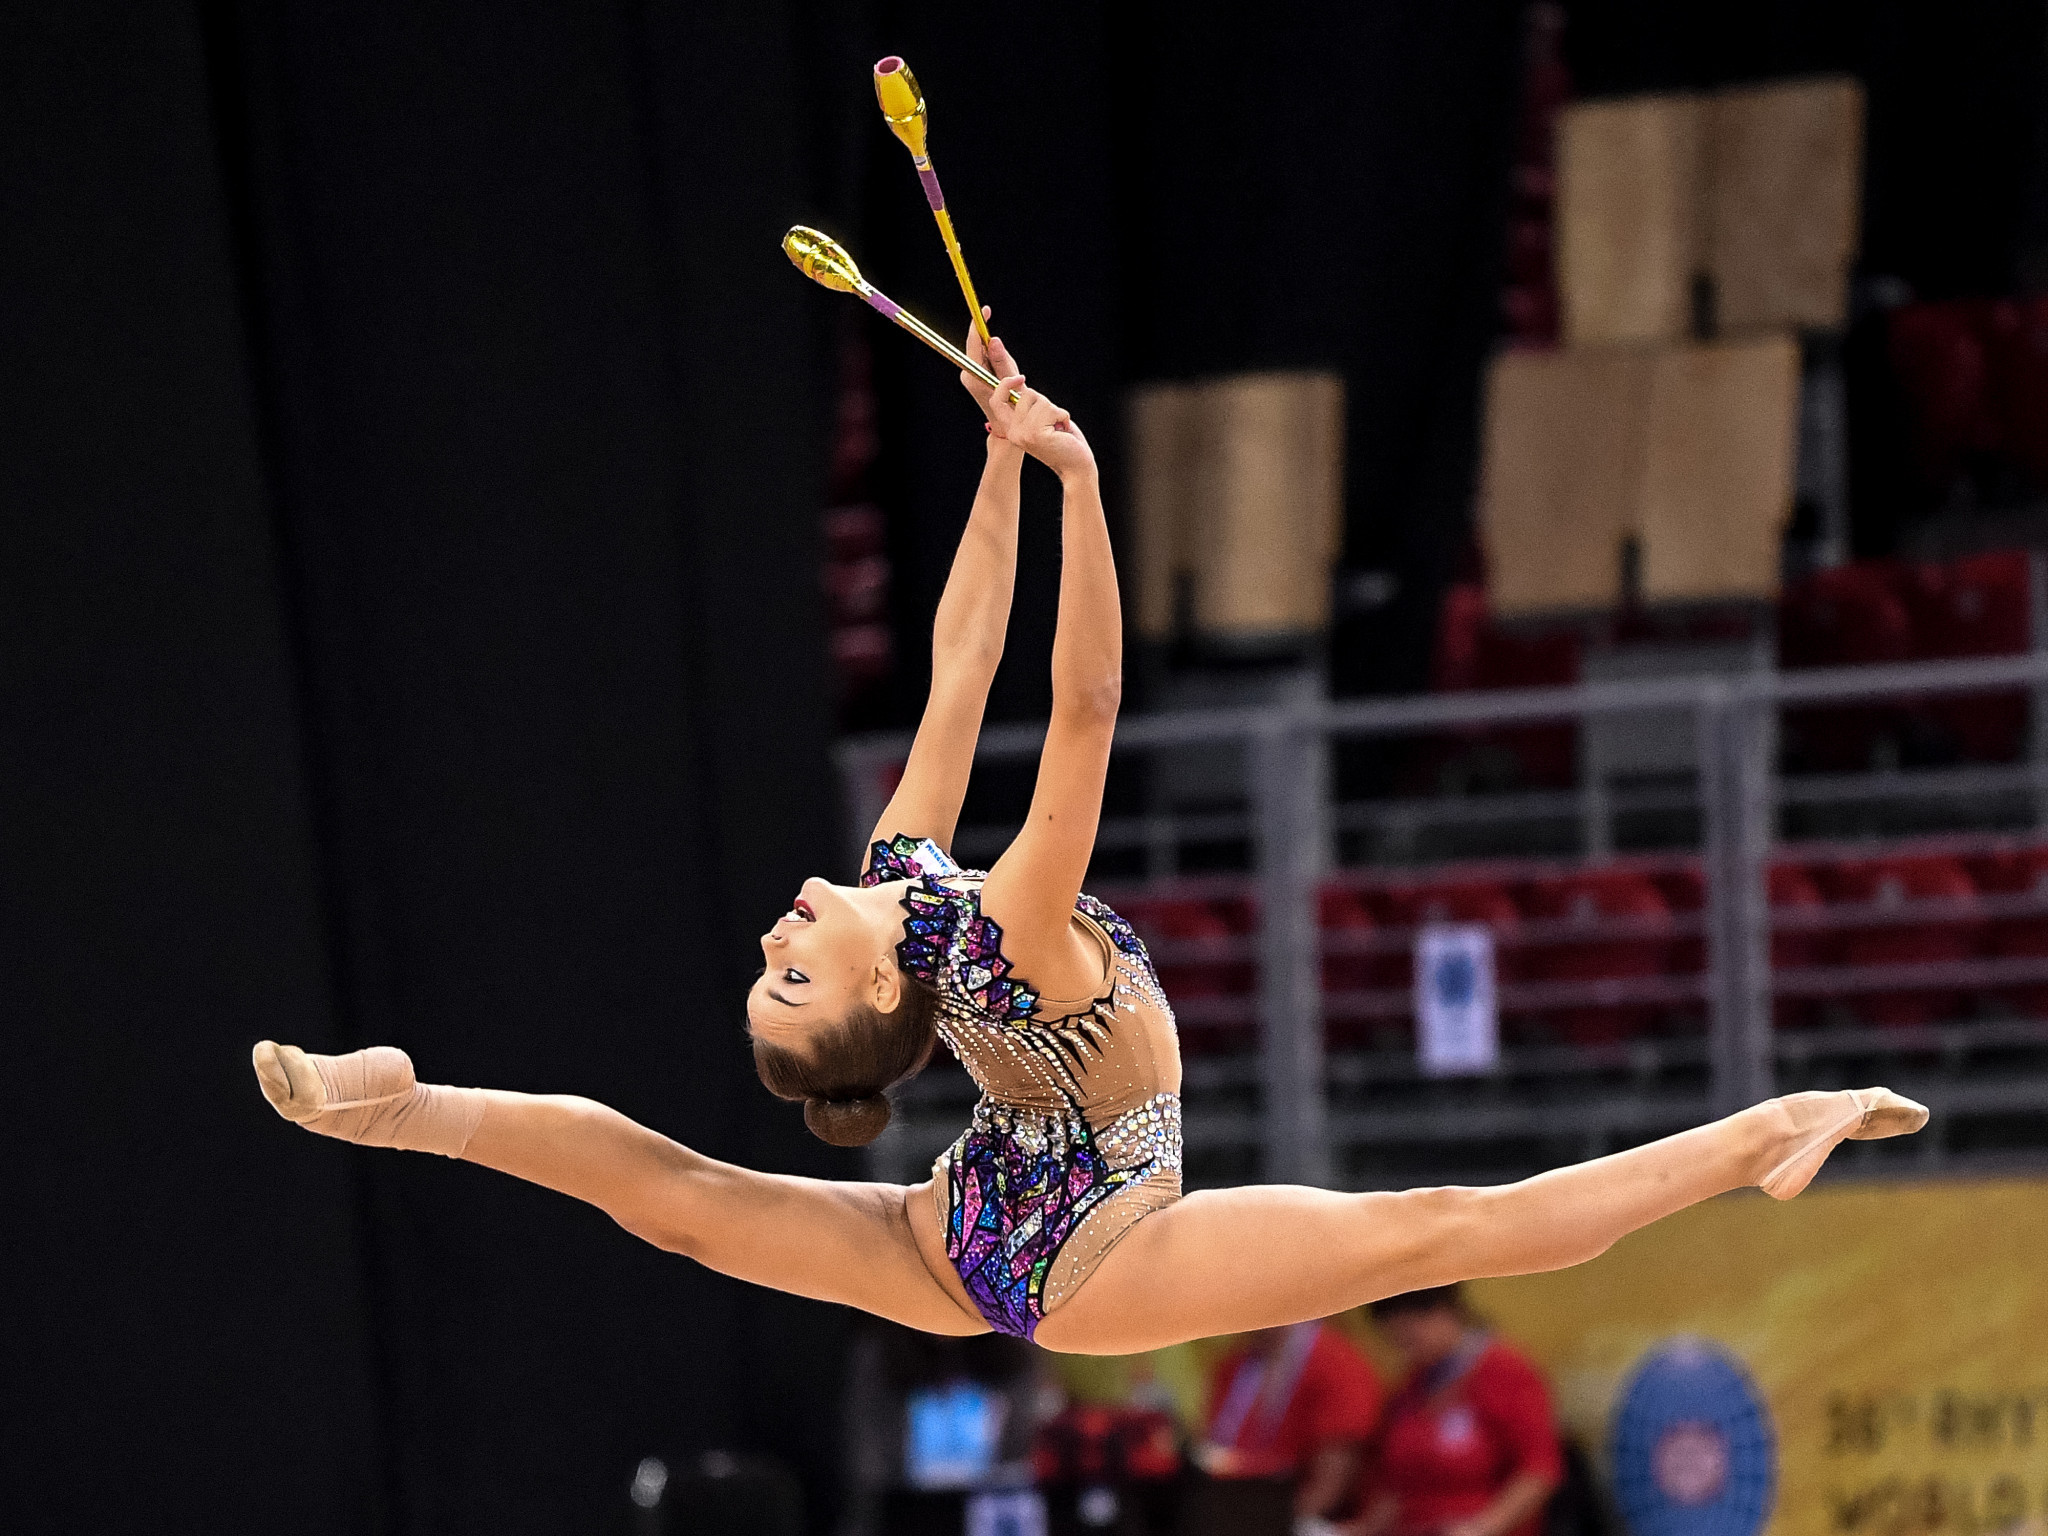 Averina earns all-around title at Rhythmic Gymnastics World Cup in Baku